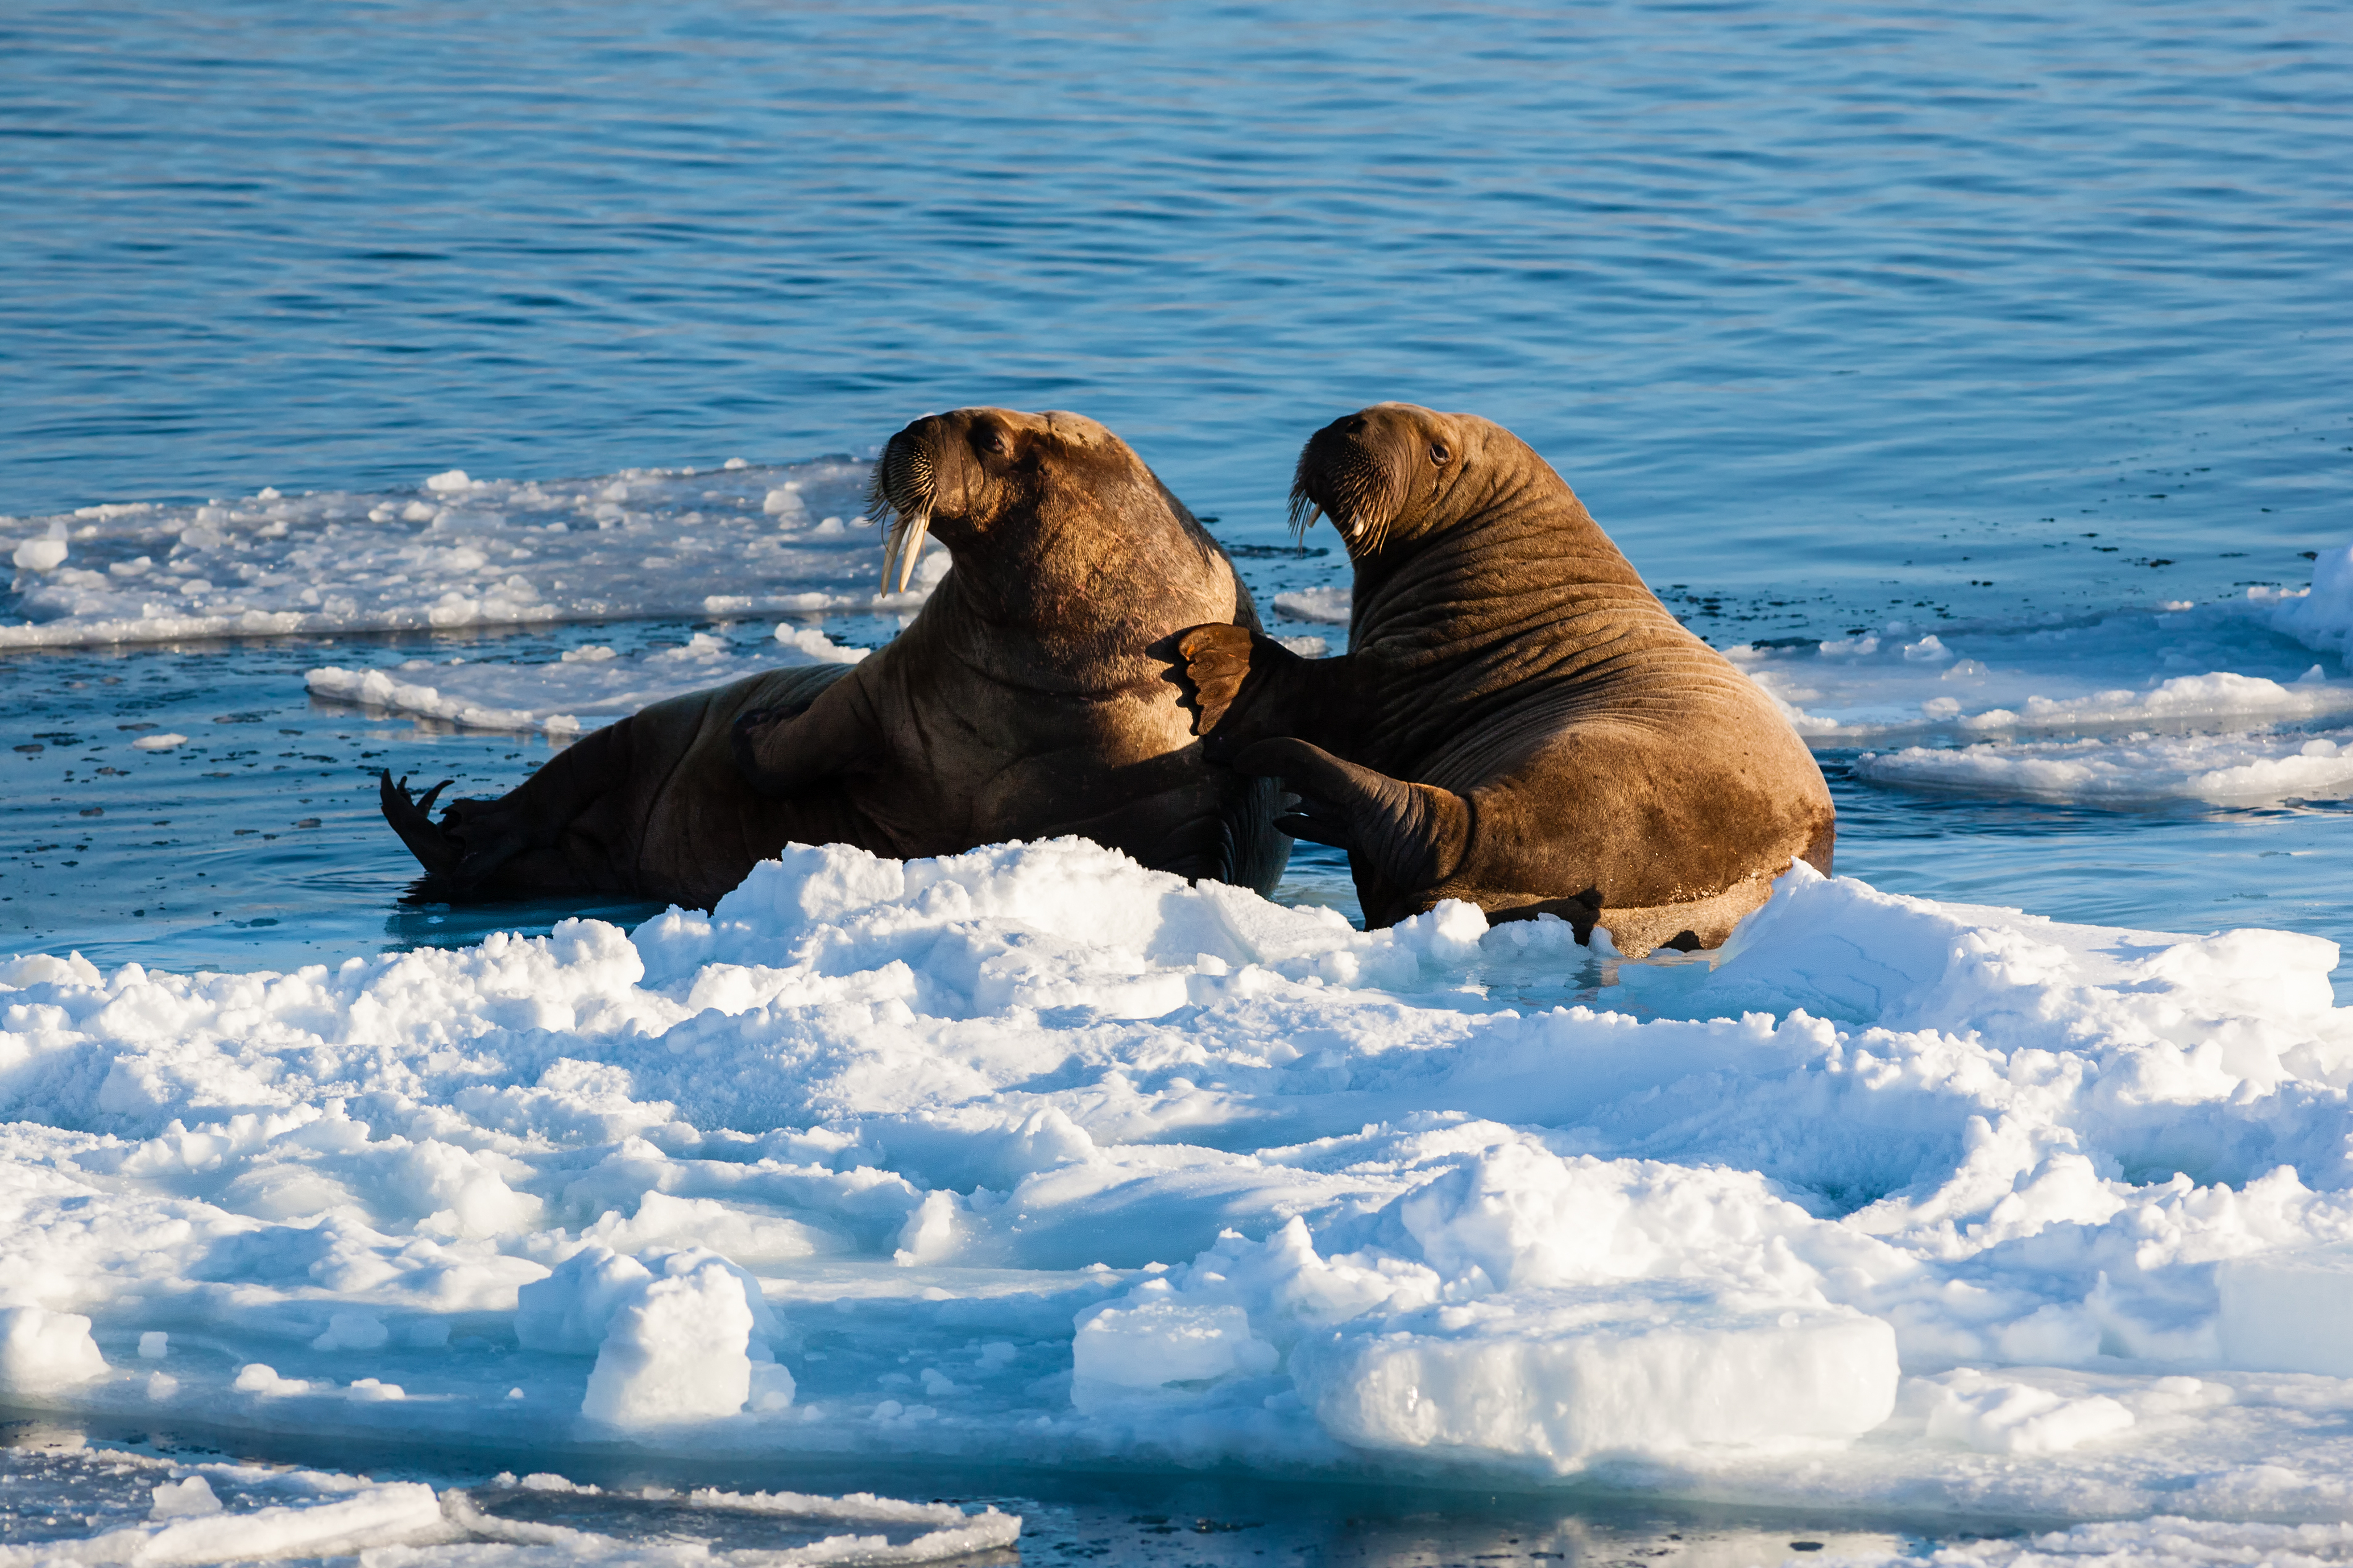 Wildlife expedition in arctic norwegian This offer excludes passport